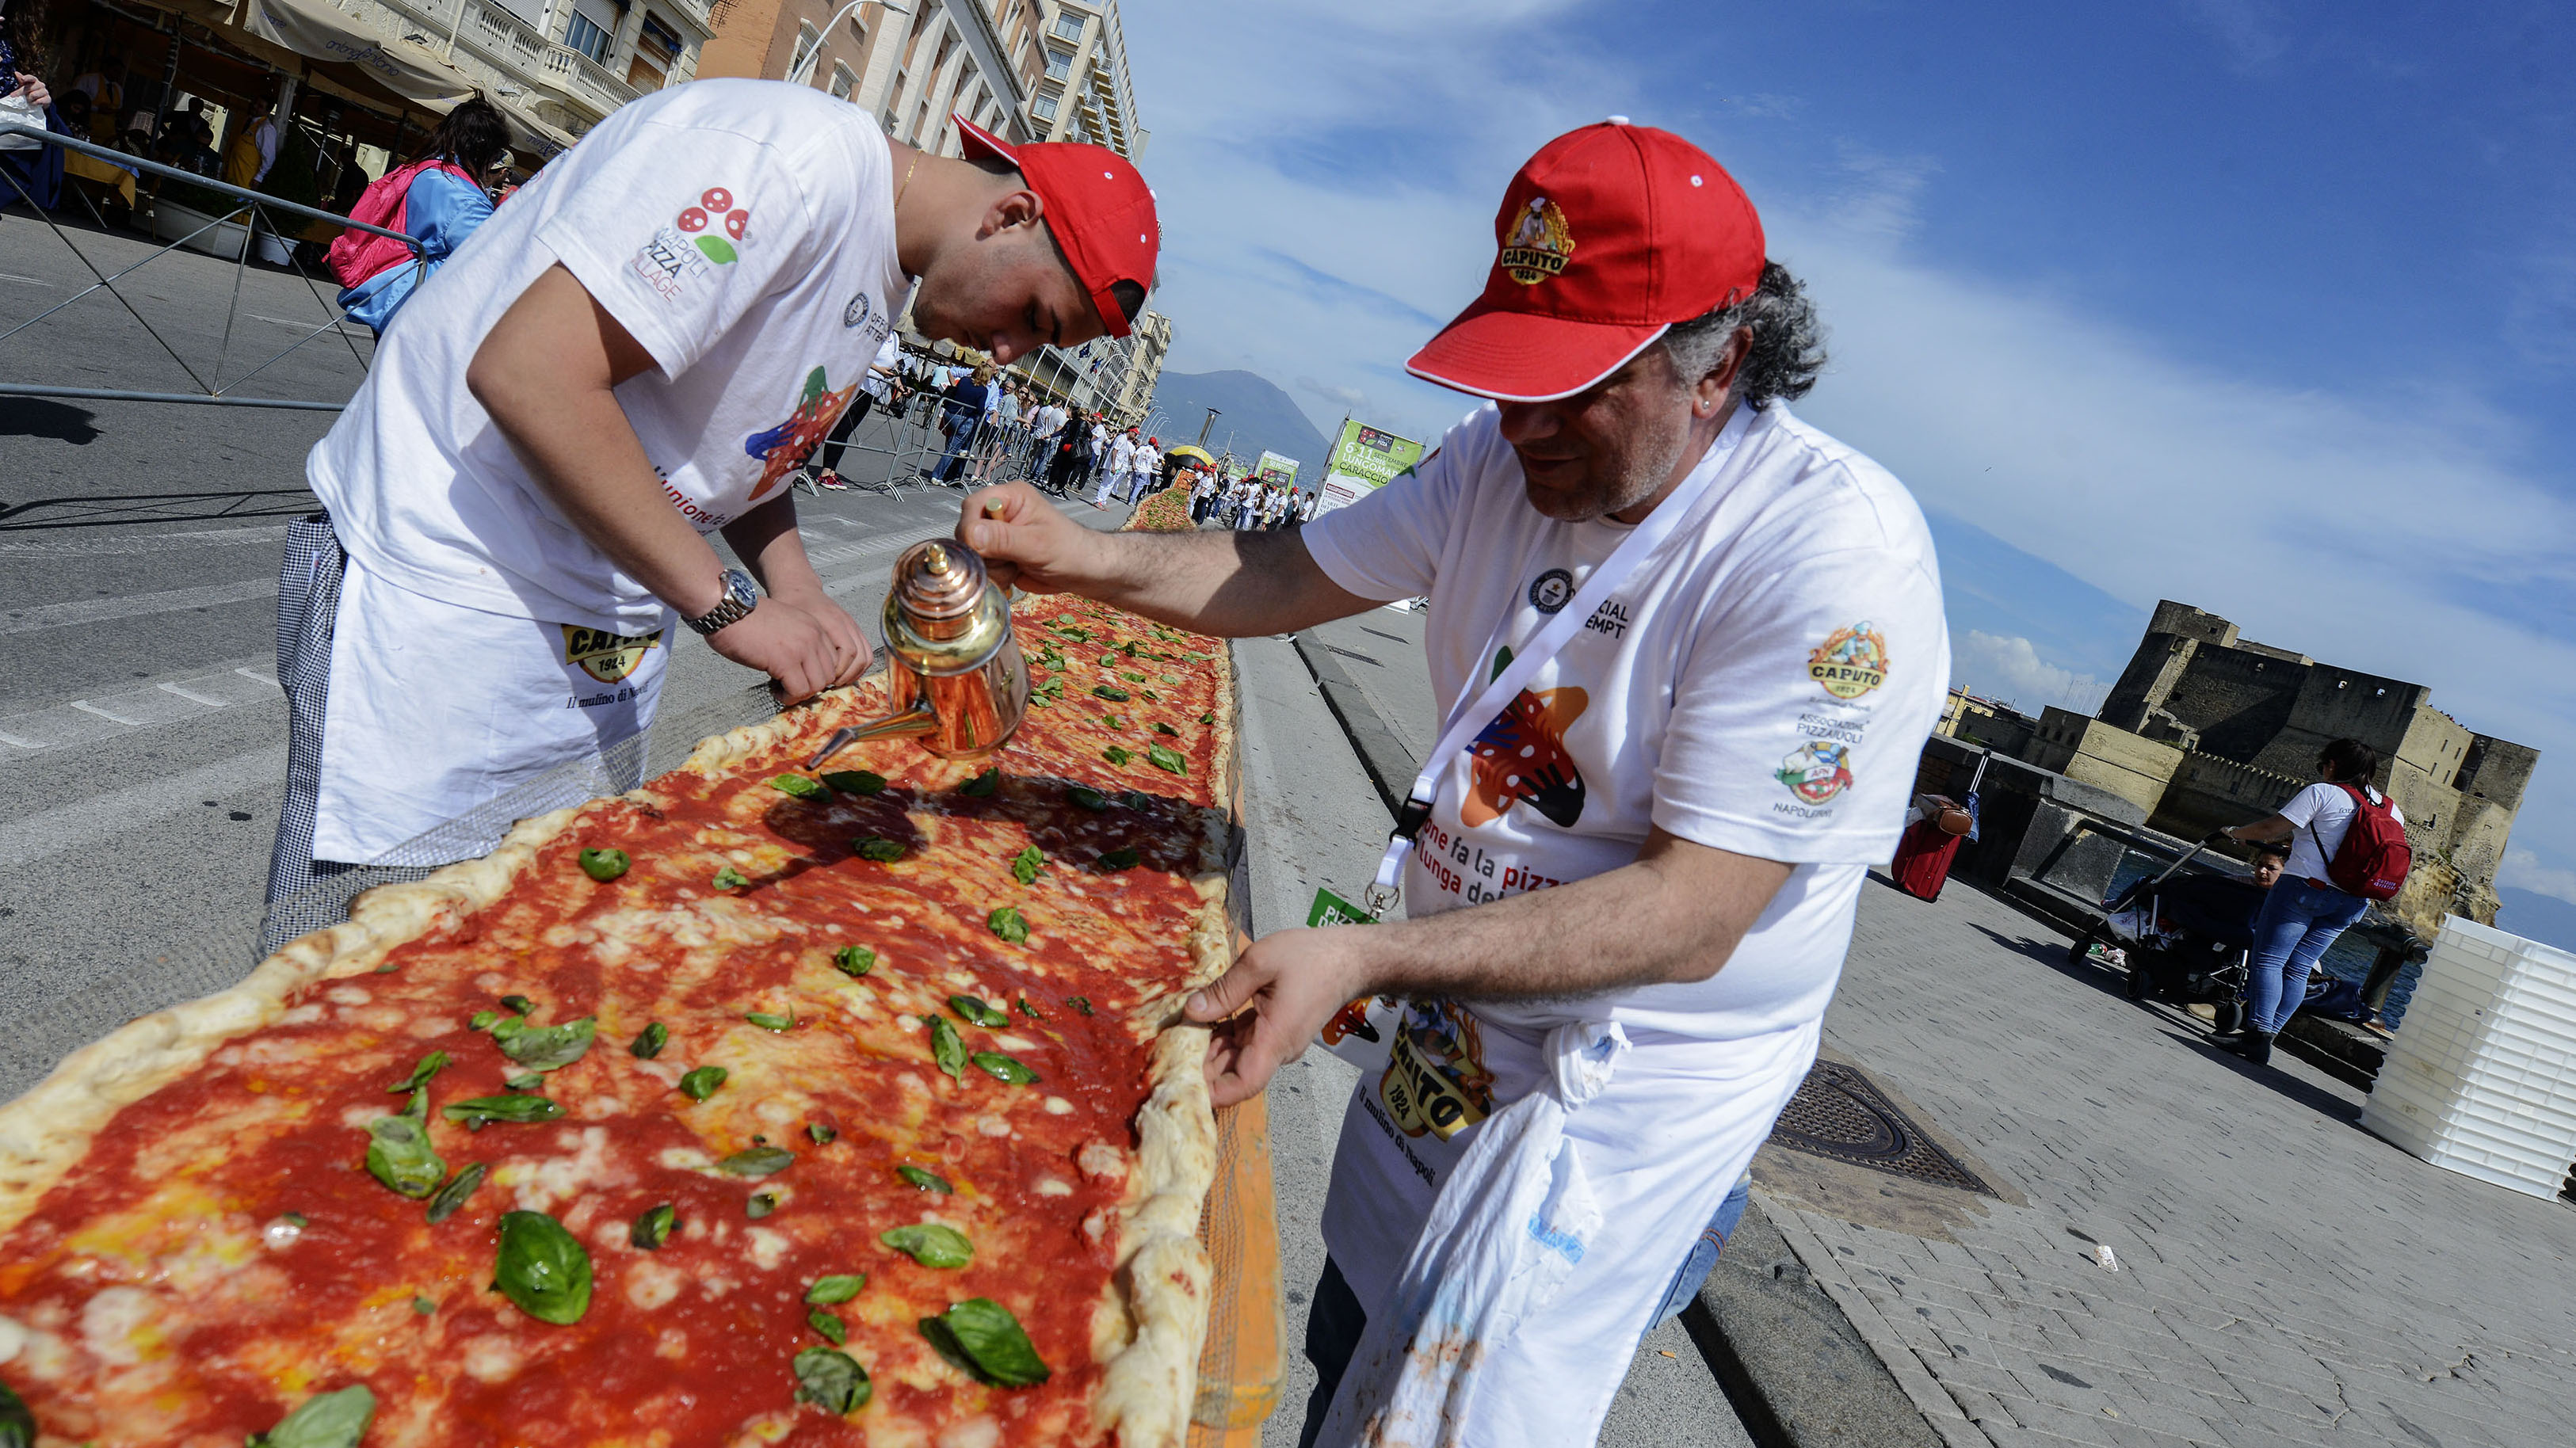 Longest Pizza in Naples